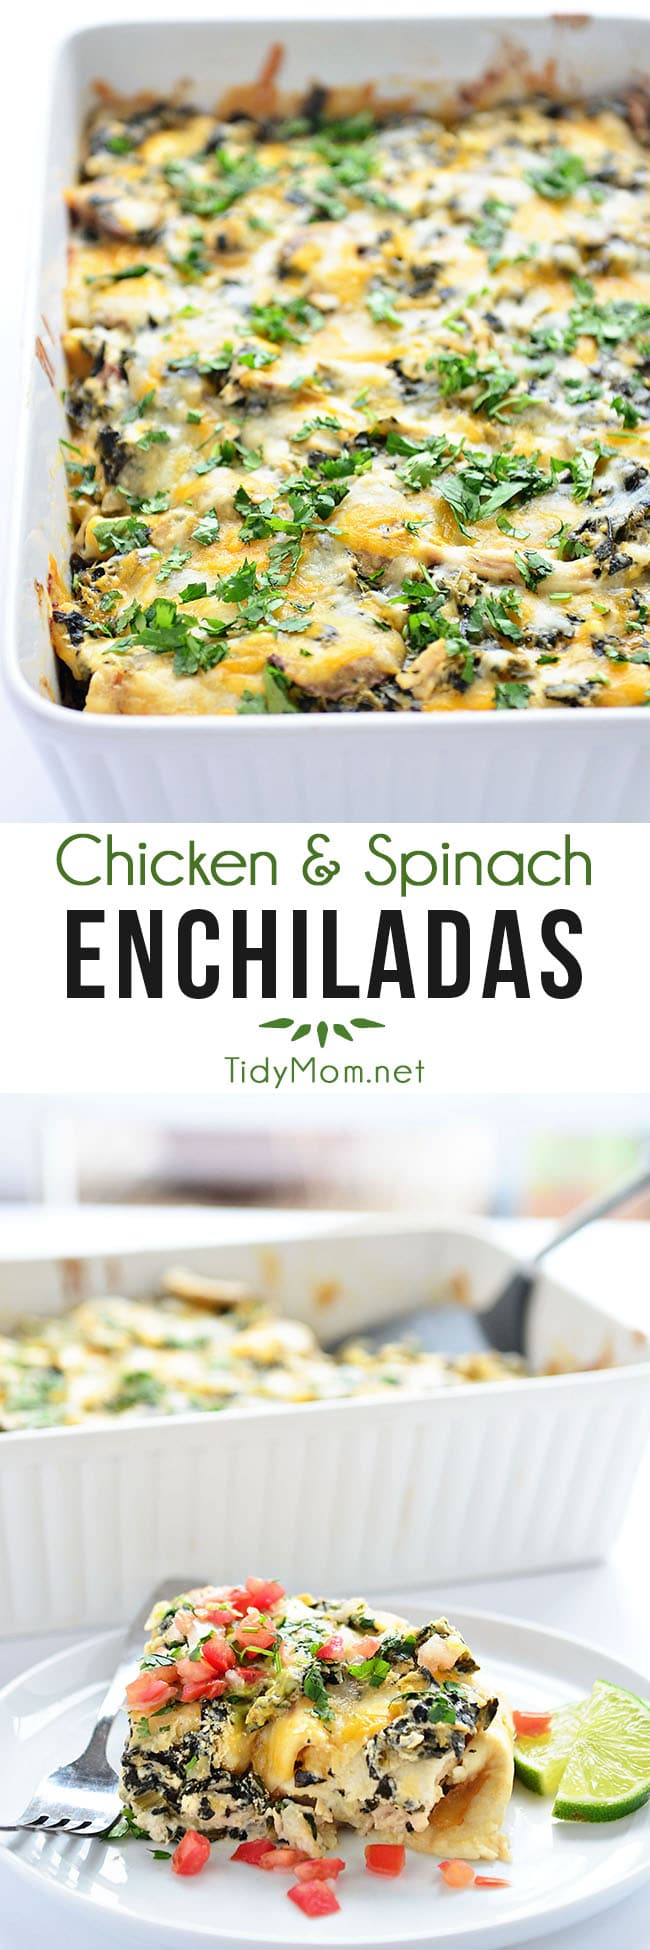 Chicken and Spinach Enchiladas are a family favorite! A simplecasserole that comes together quickly and tastes rich and savory, bursting withflavor! Printable recipe + how-to video at TidyMom.net #enchiladas #casserole #chicken #chickendinner #spinach